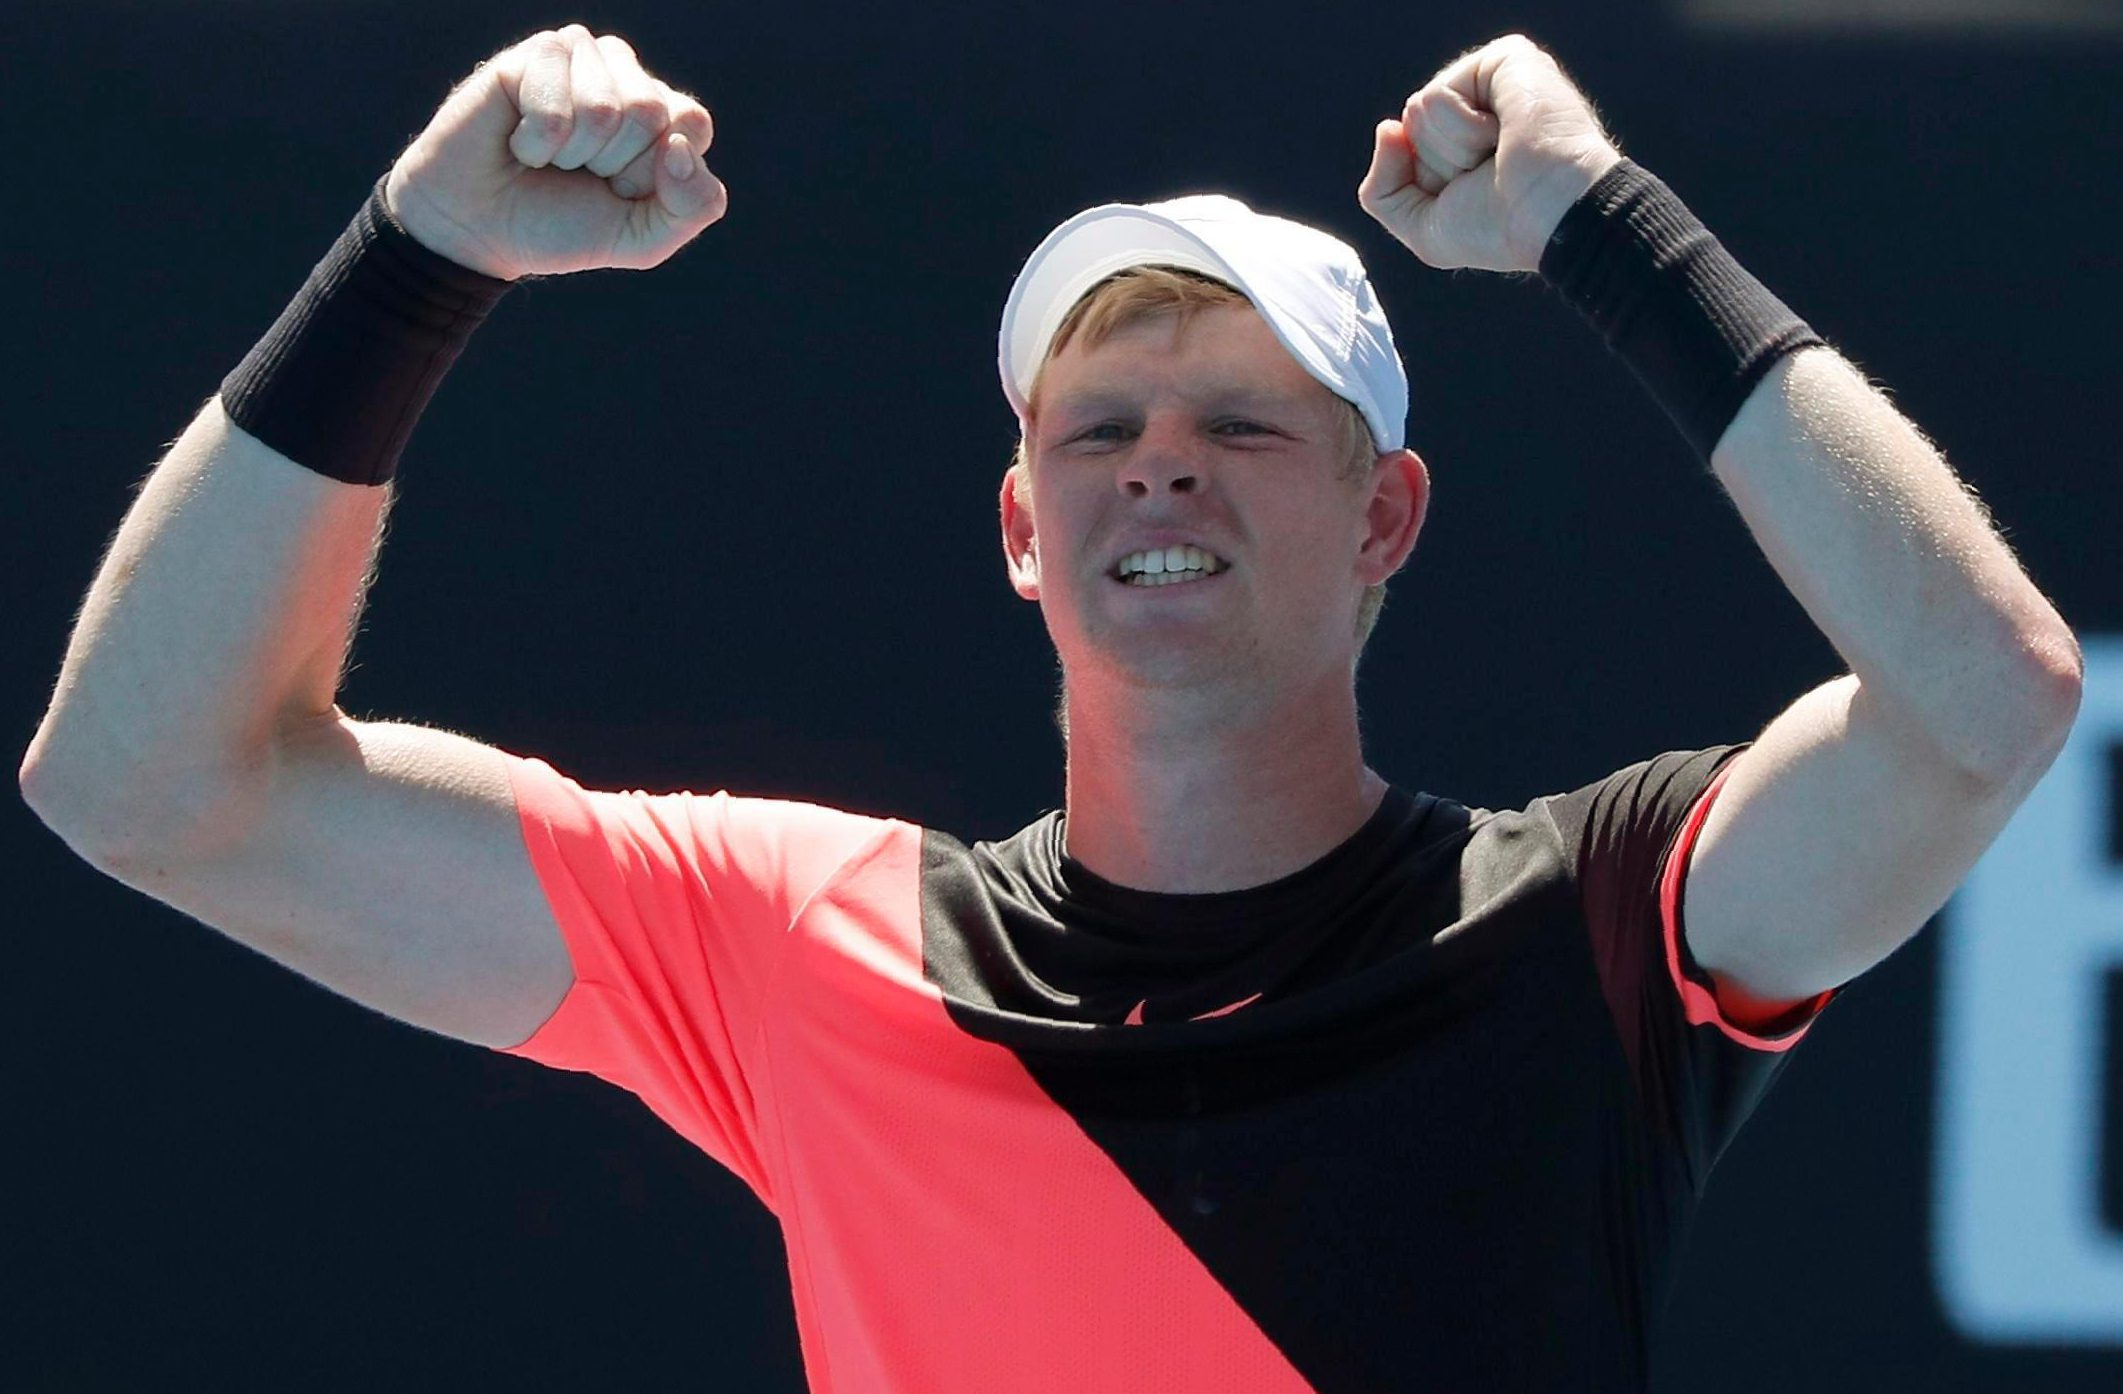 Kyle Edmund dosed up on ice and salt as he aims to follow up sizzling Aussie Open win with last-16 triumph vs Andreas Seppi